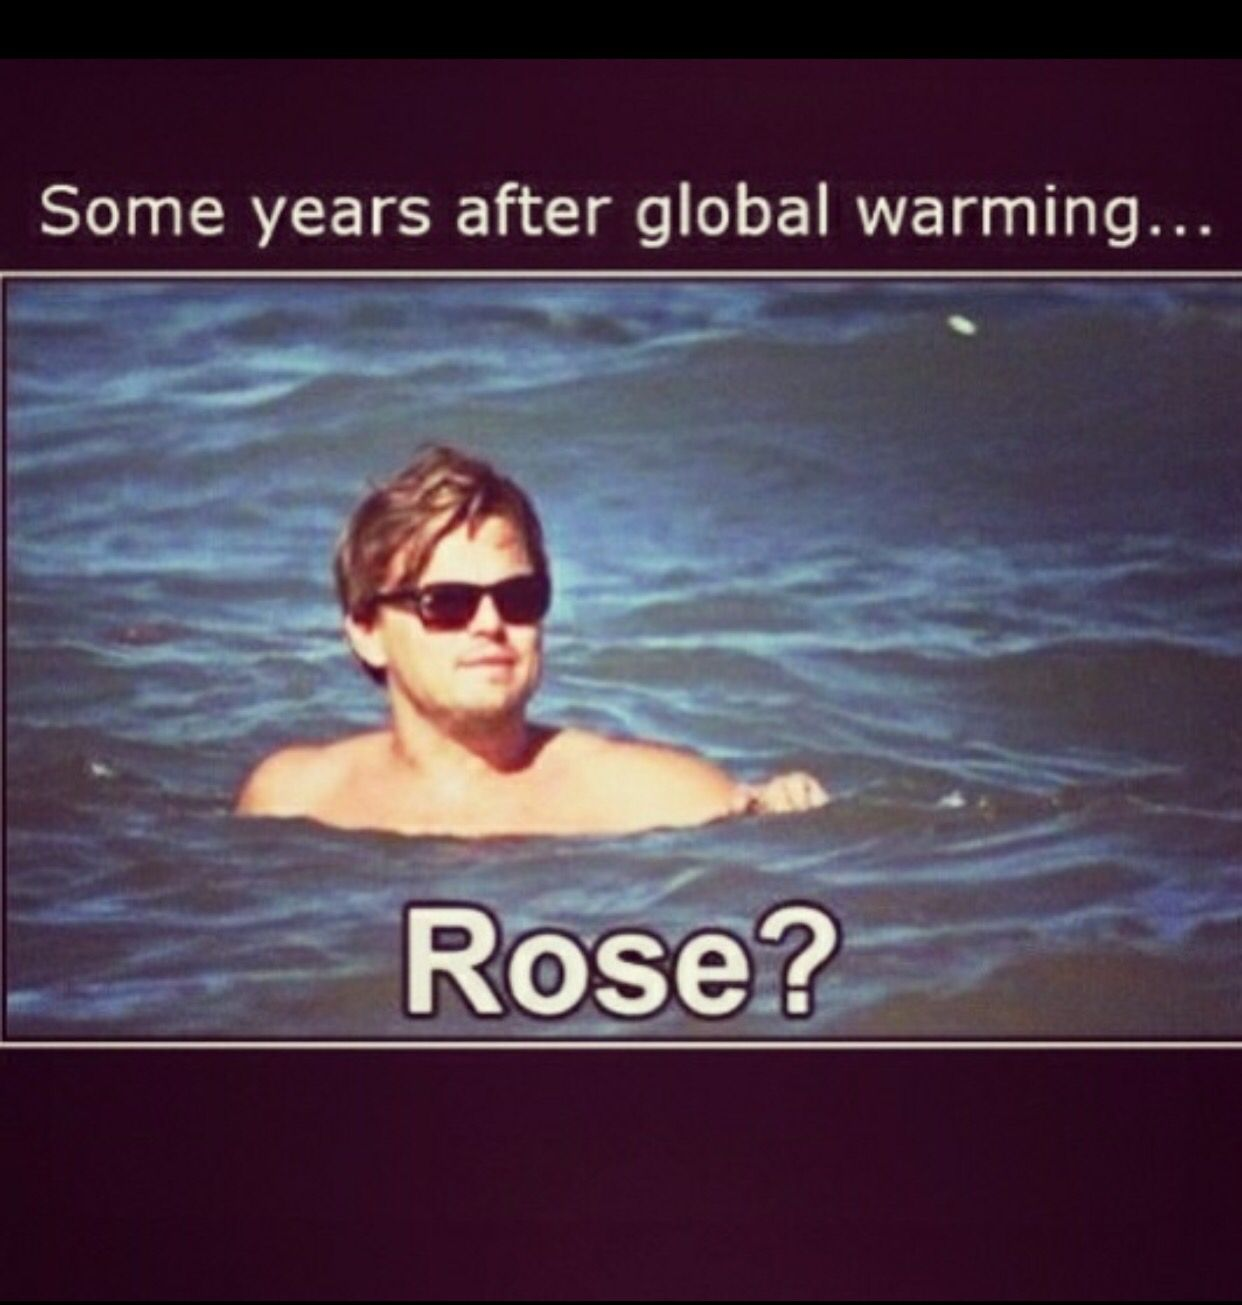 Never Let Go Titanic Funny Funny Pictures With Captions Funny Pictures